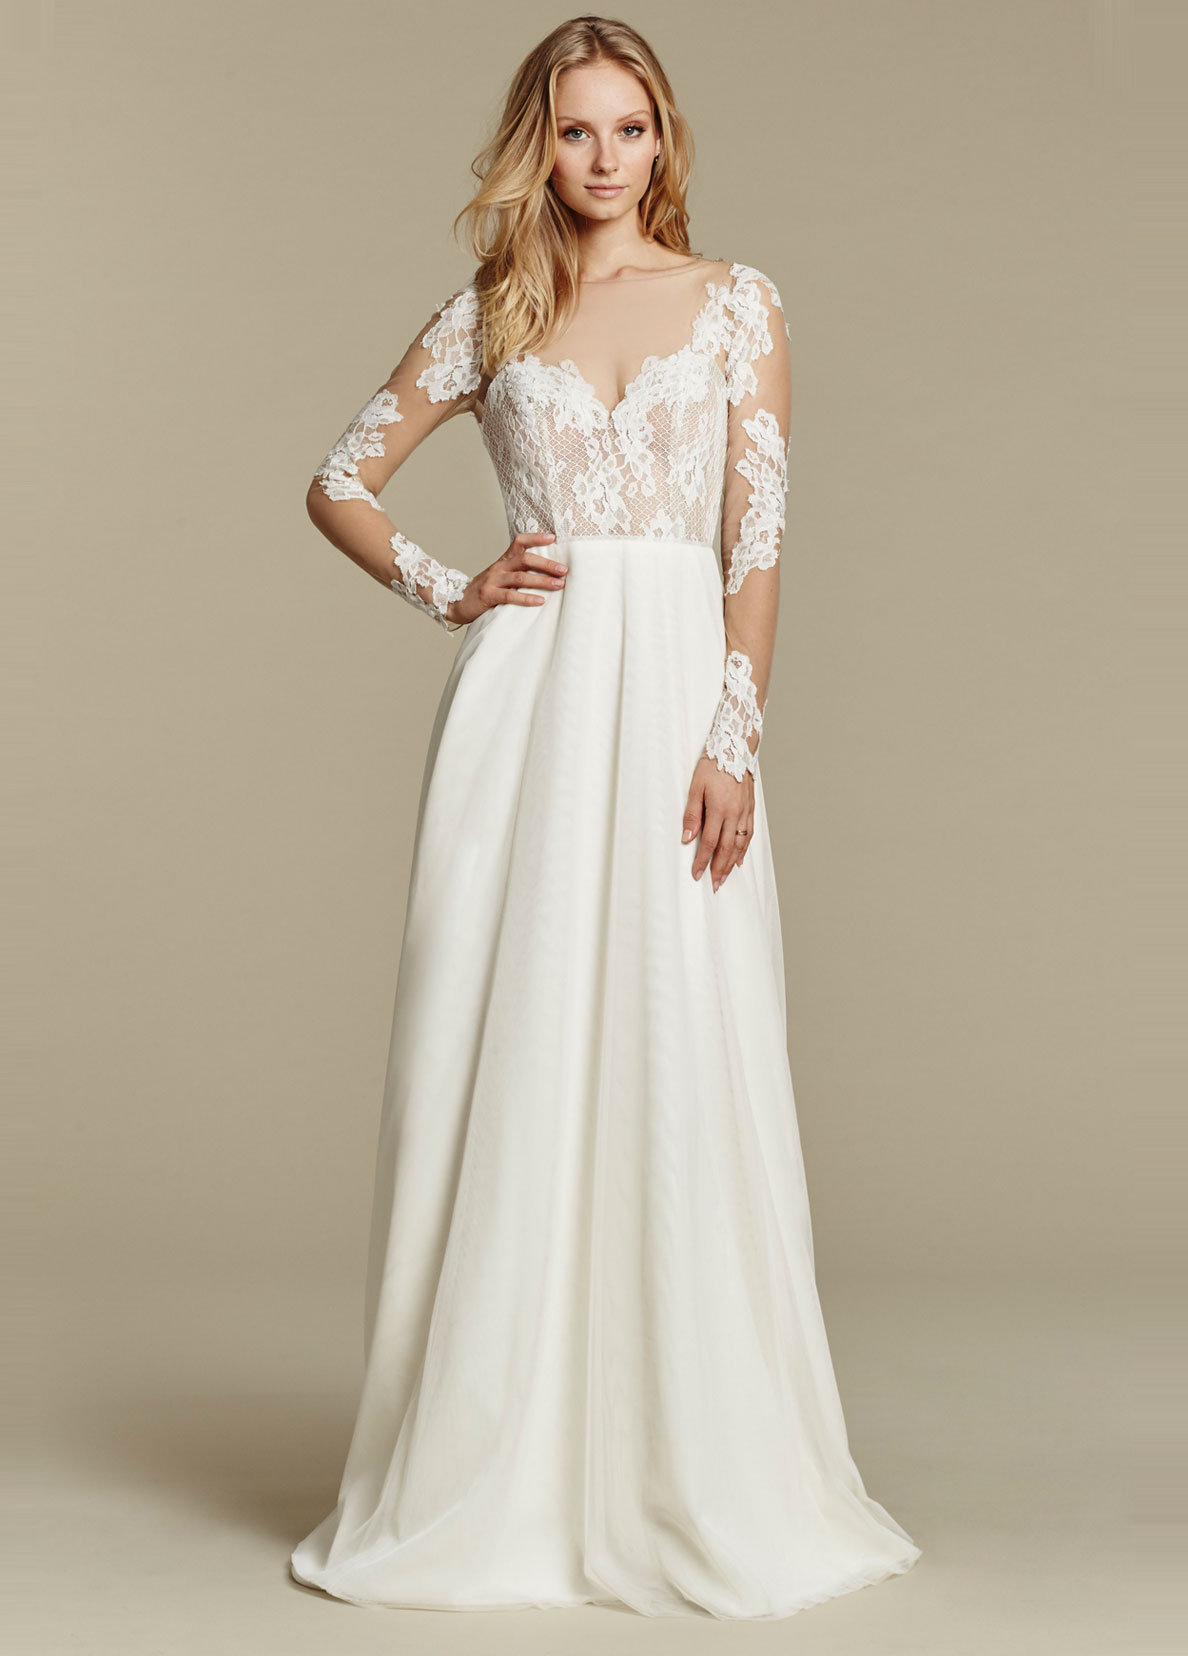 Bridal Gowns And Wedding Dresses By Jlm Couture Style 1604